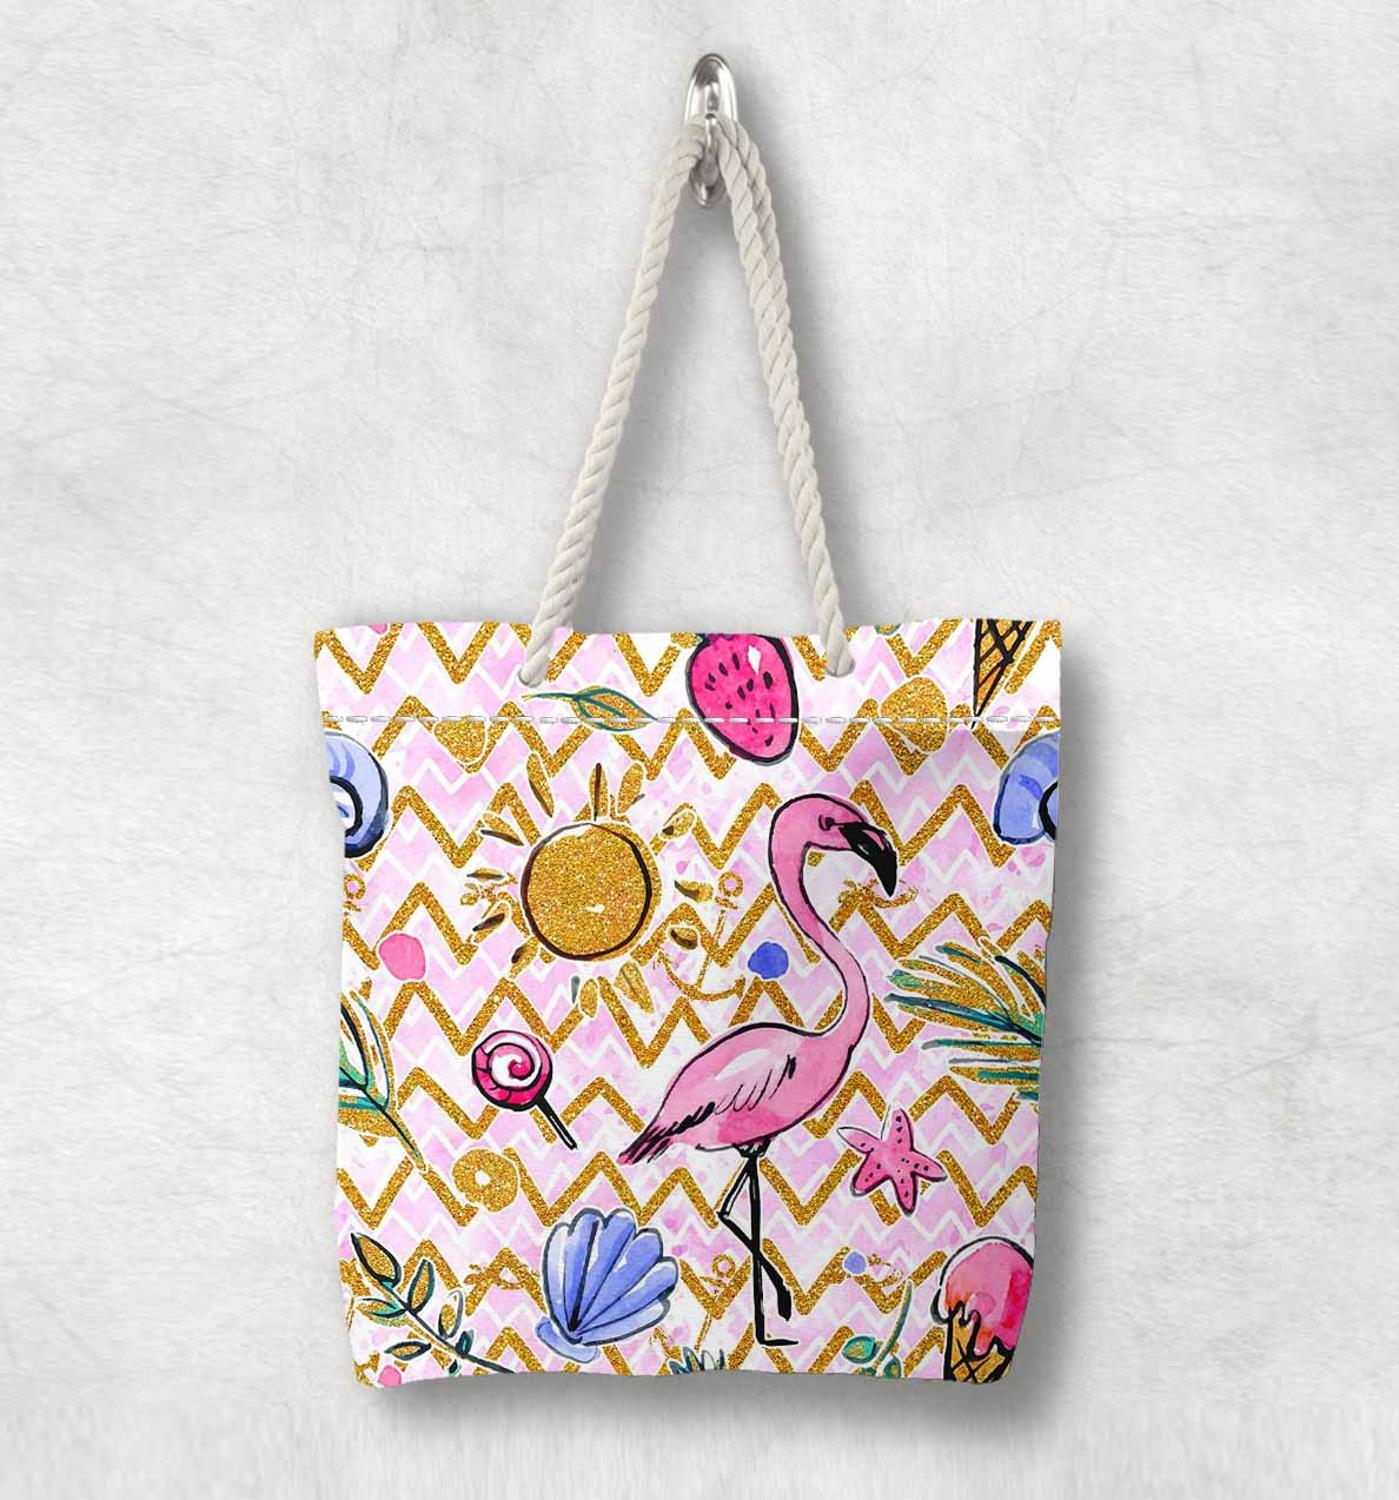 Else Pink Flamingo Animals Sun Sea Shells New Fashion White Rope Handle Canvas Bag Cotton Canvas Zippered Tote Bag Shoulder Bag